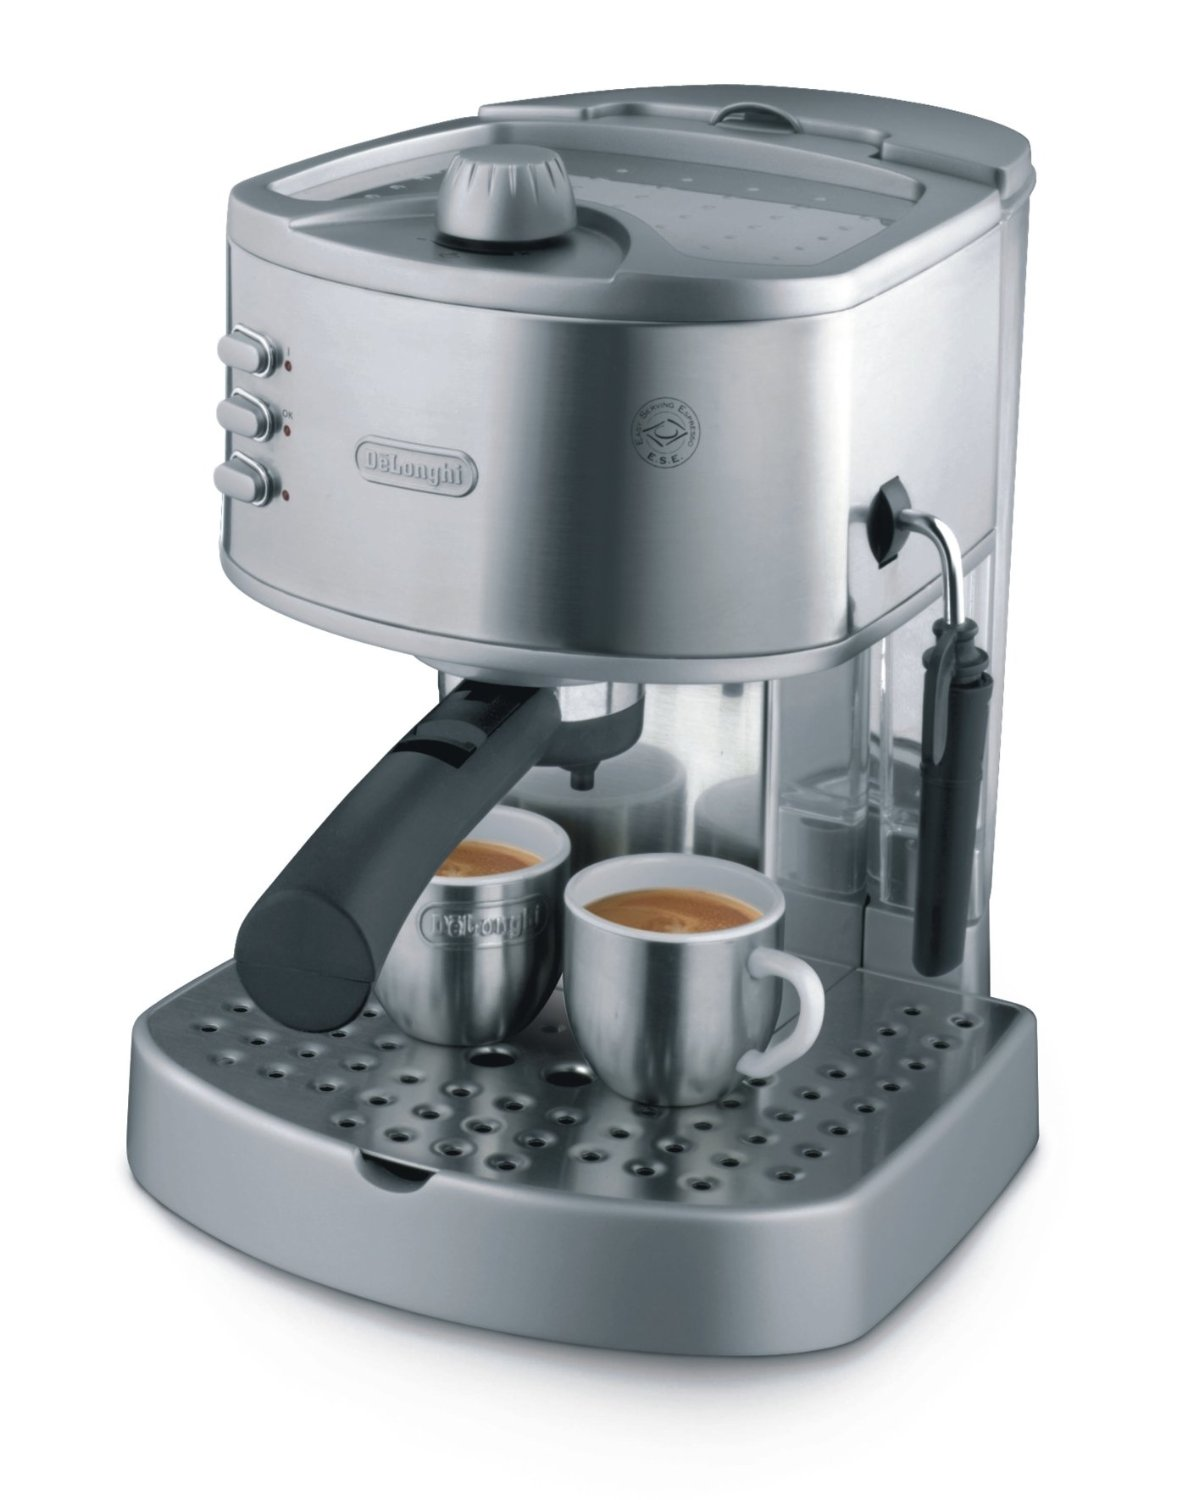 Heston Coffee Maker Reviews : De Longhi DEDICA EC680 Pump Espresso Machine Review Your Best Coffee Machine